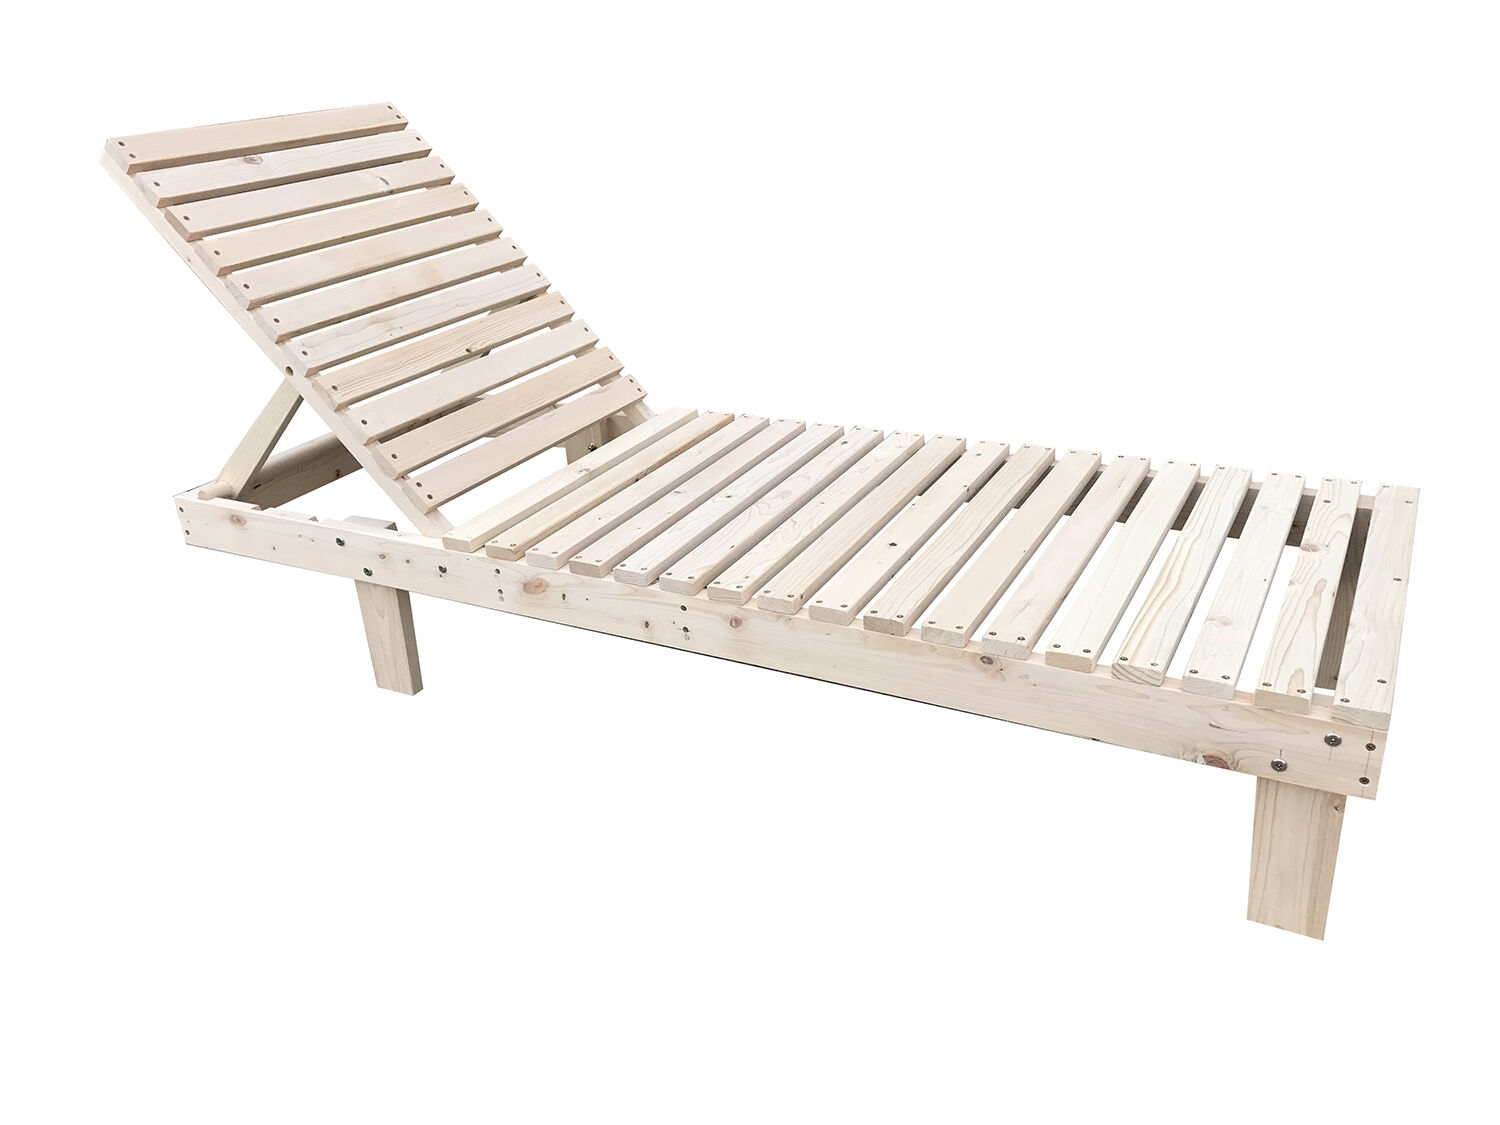 In/Outdoor Wooden Chaise Lounge Patio Lawn Solid Chair Adjustable Furniture New